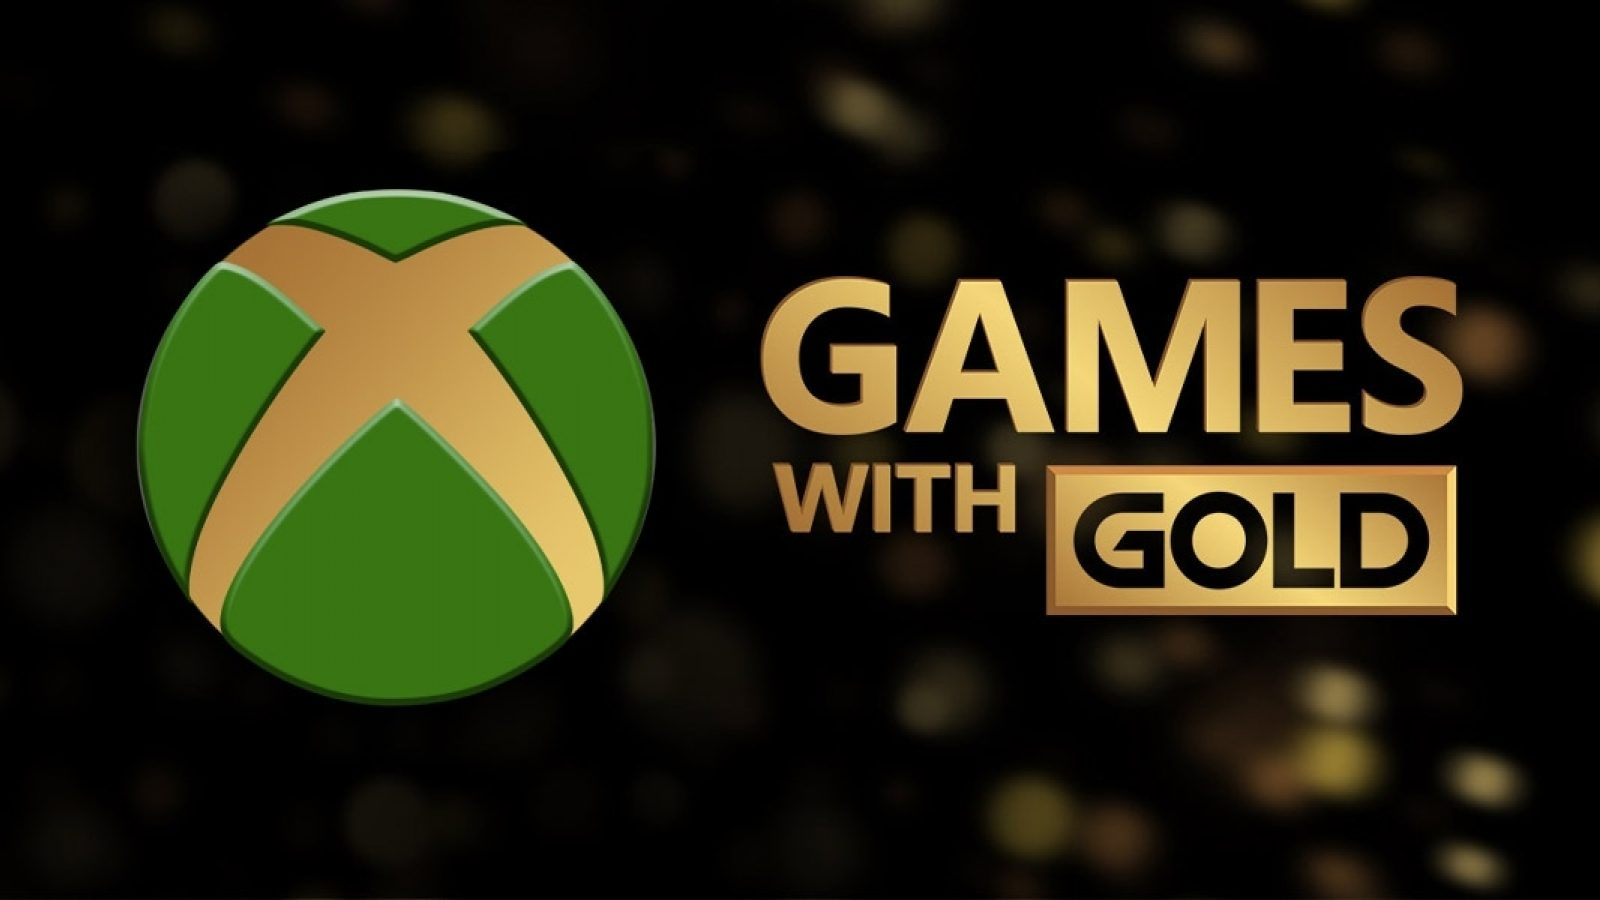 Xbox One Games With Gold February 2020 Free Games: What to Expect Next Month